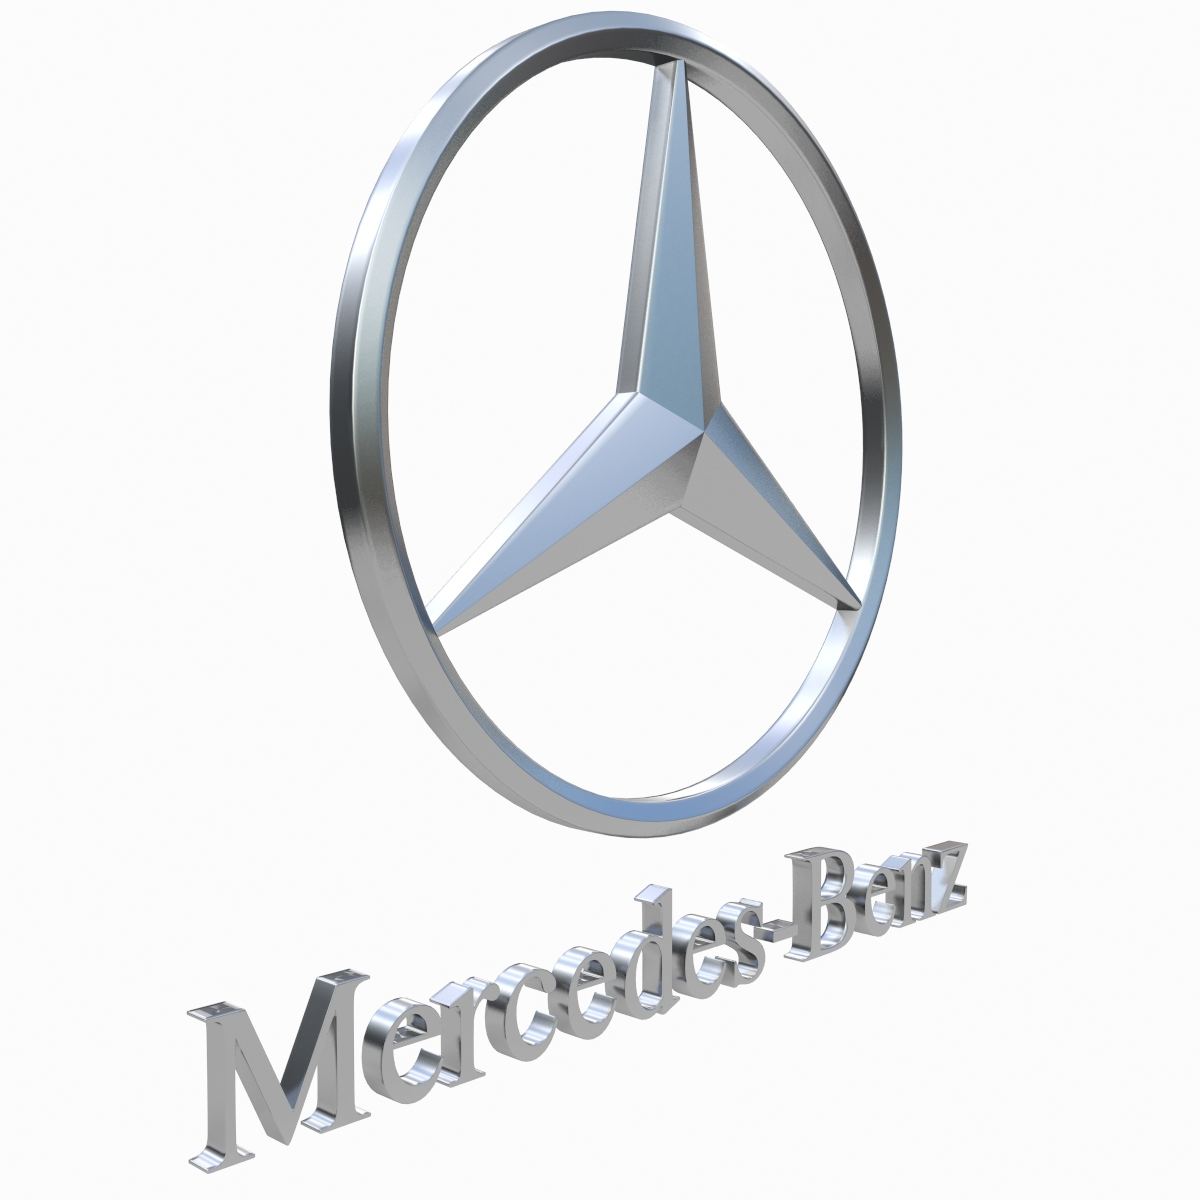 Mercedes Benz Logo 3D Wallpaper